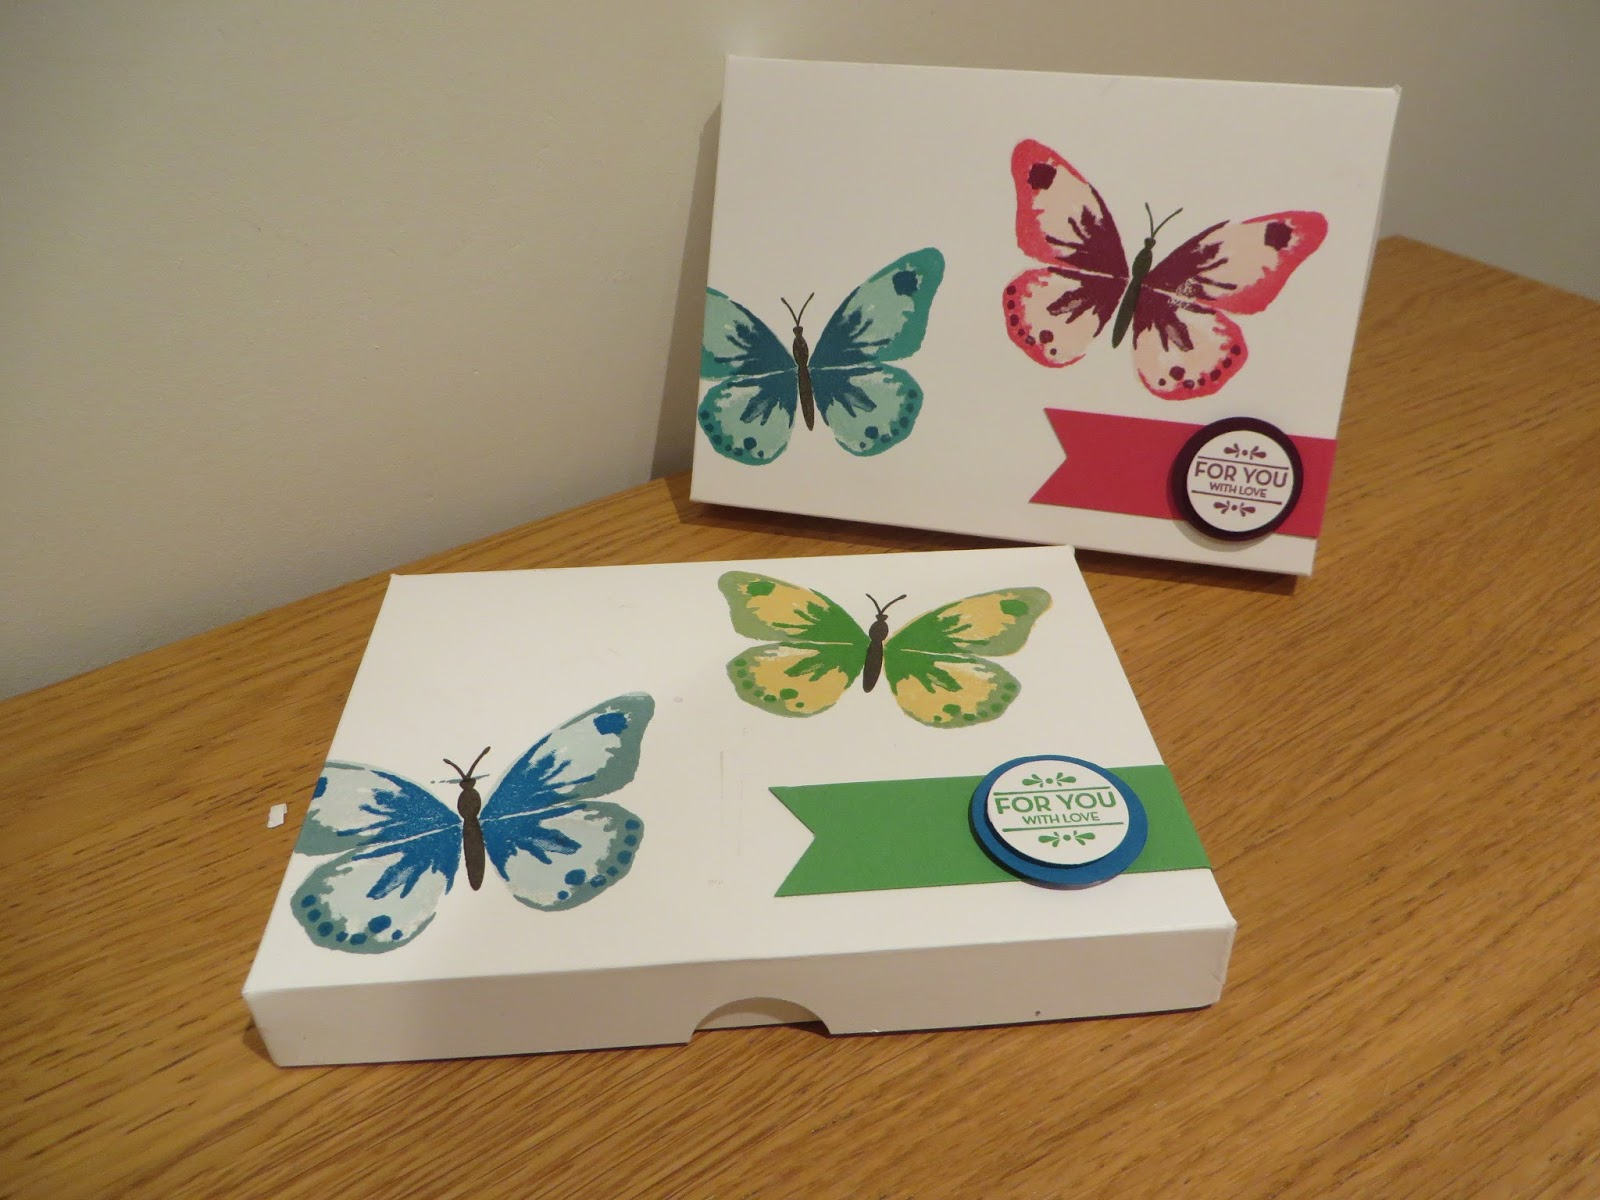 Craftycarolinecreates watercolor wings card gift box handmade watercolor wings card gift box handmade papercraft with stampin up products watercolour wings jeuxipadfo Gallery